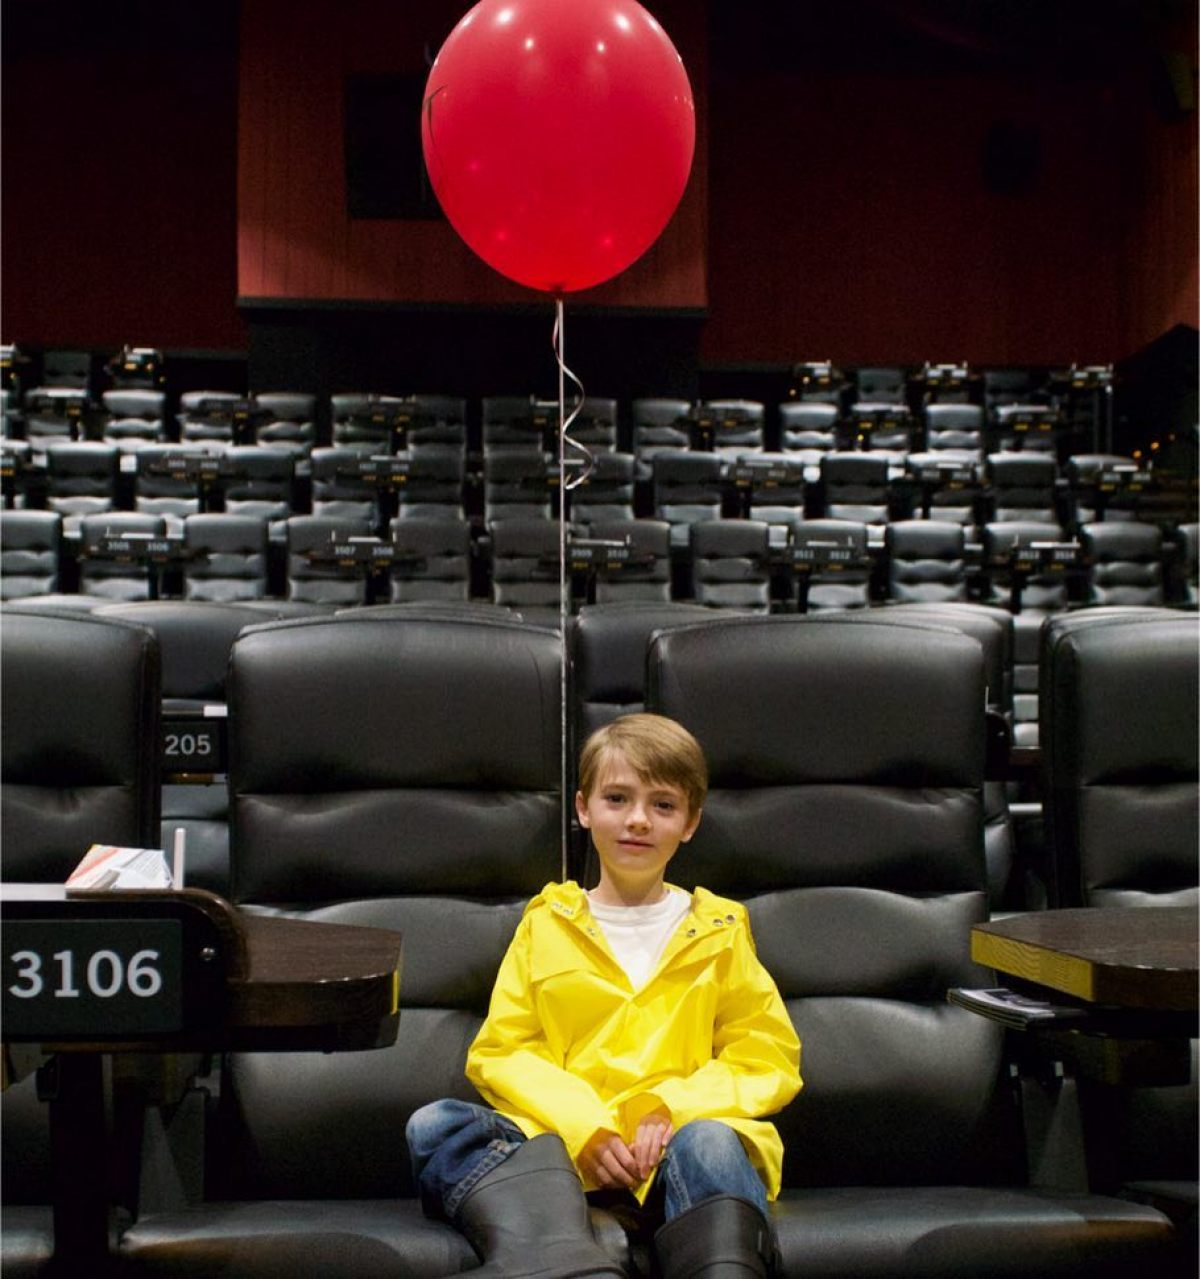 georgie from it went to see it dressed as georgie from it birth